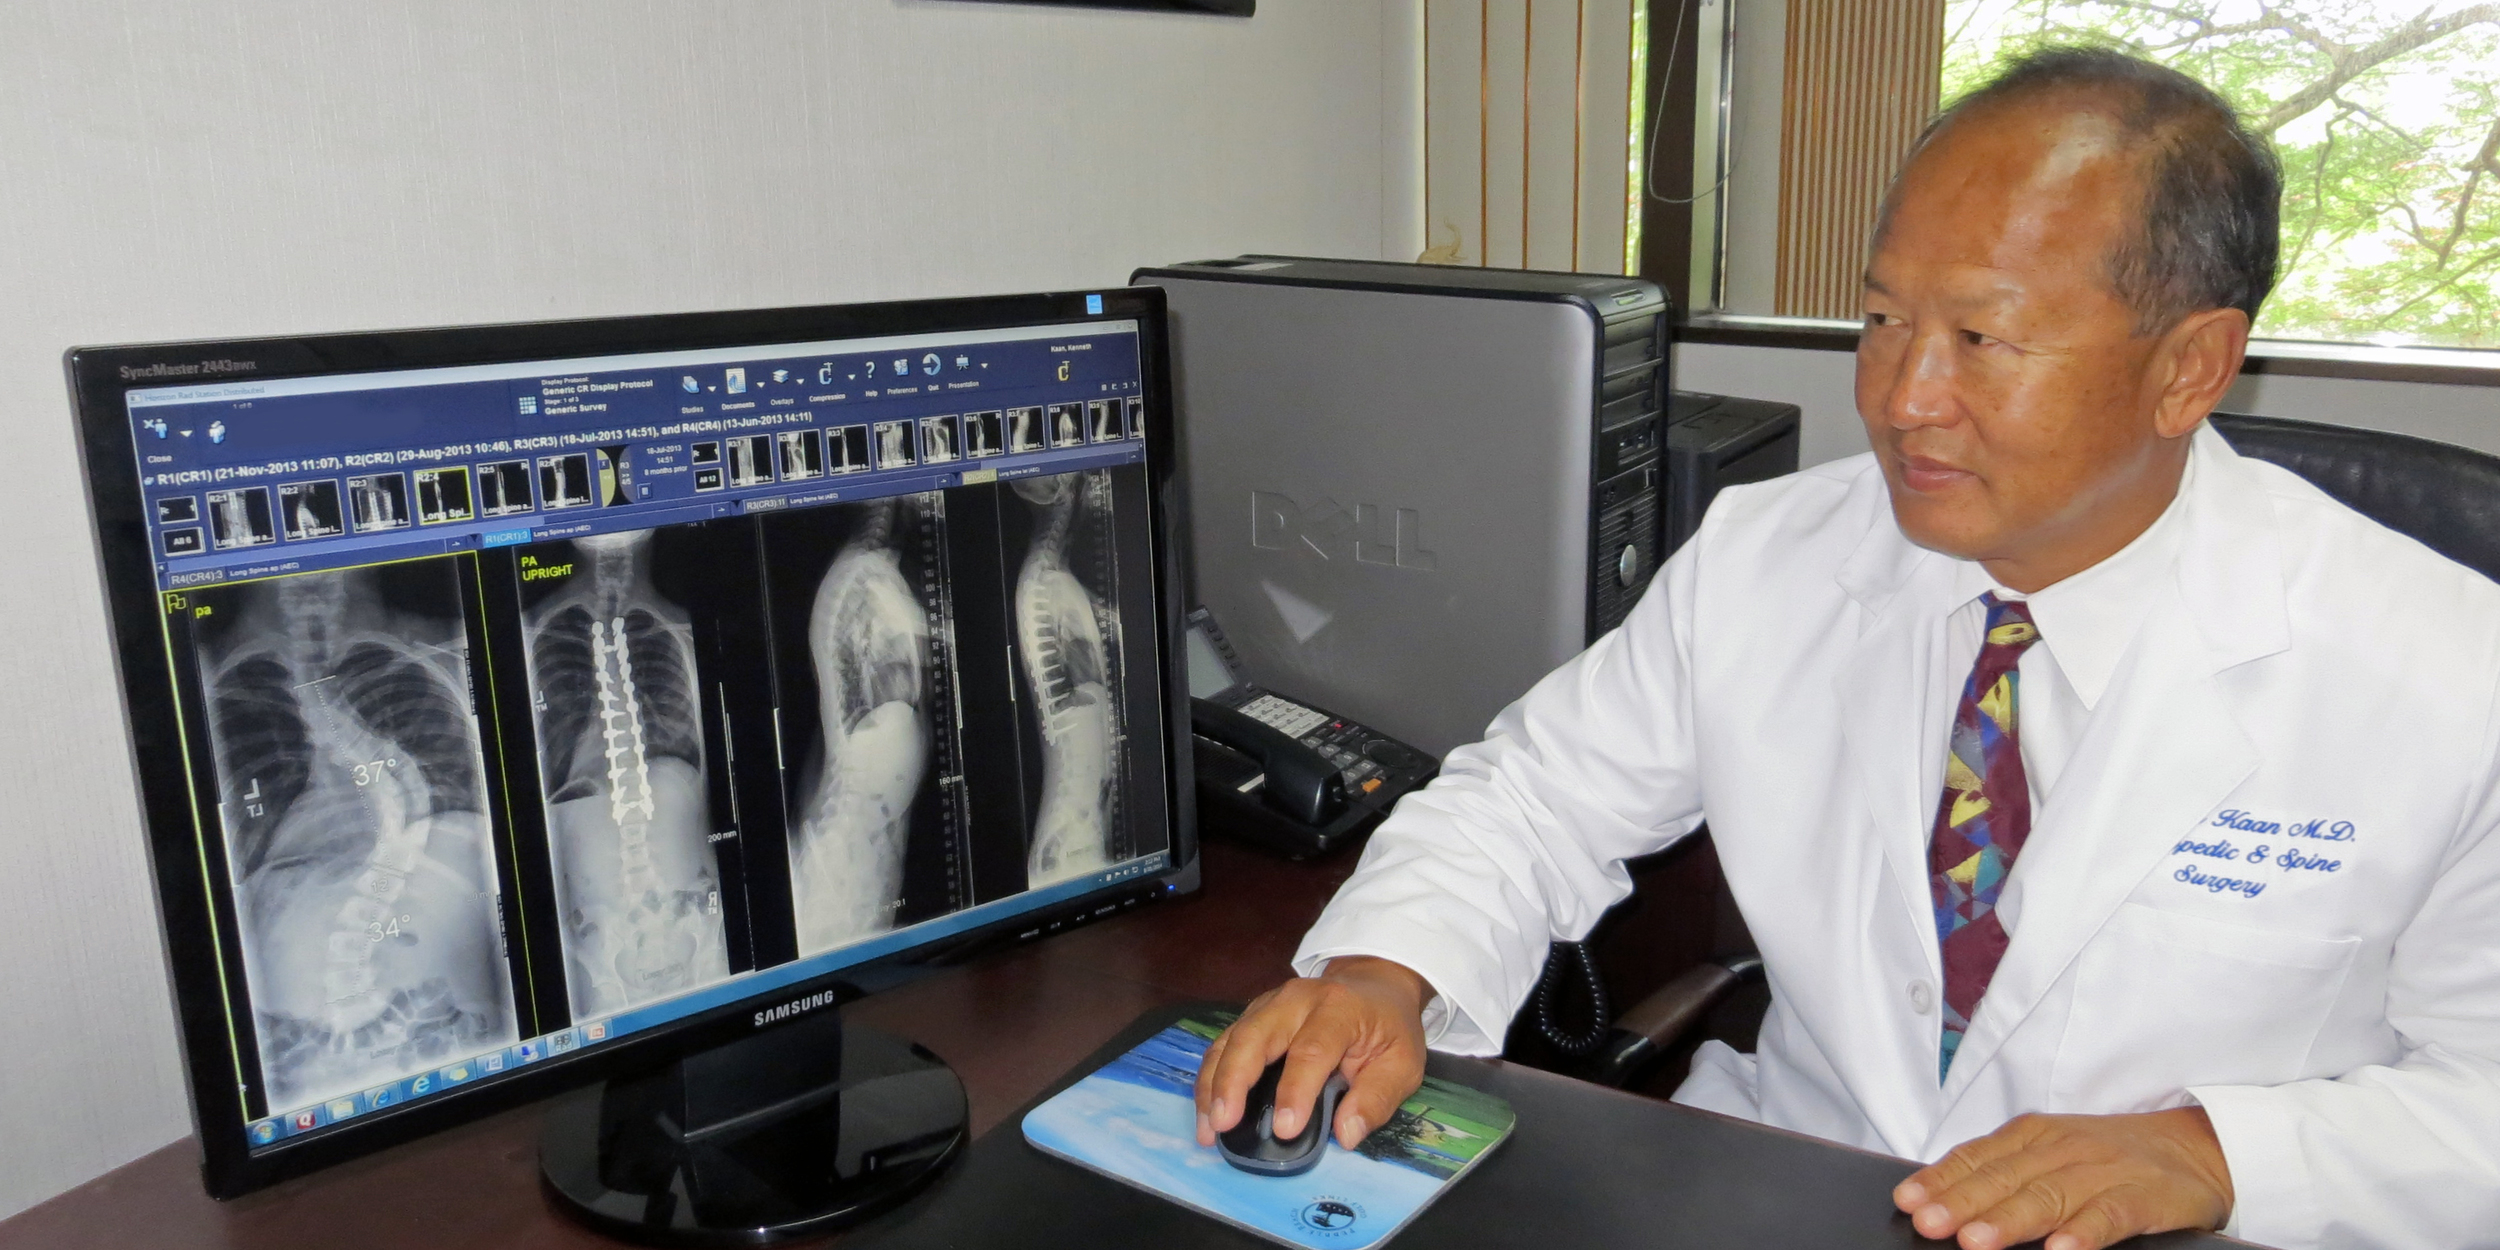 Dr. Kaan views an imaging study in his office, comparing his patient's post-operative results to her initial condition.